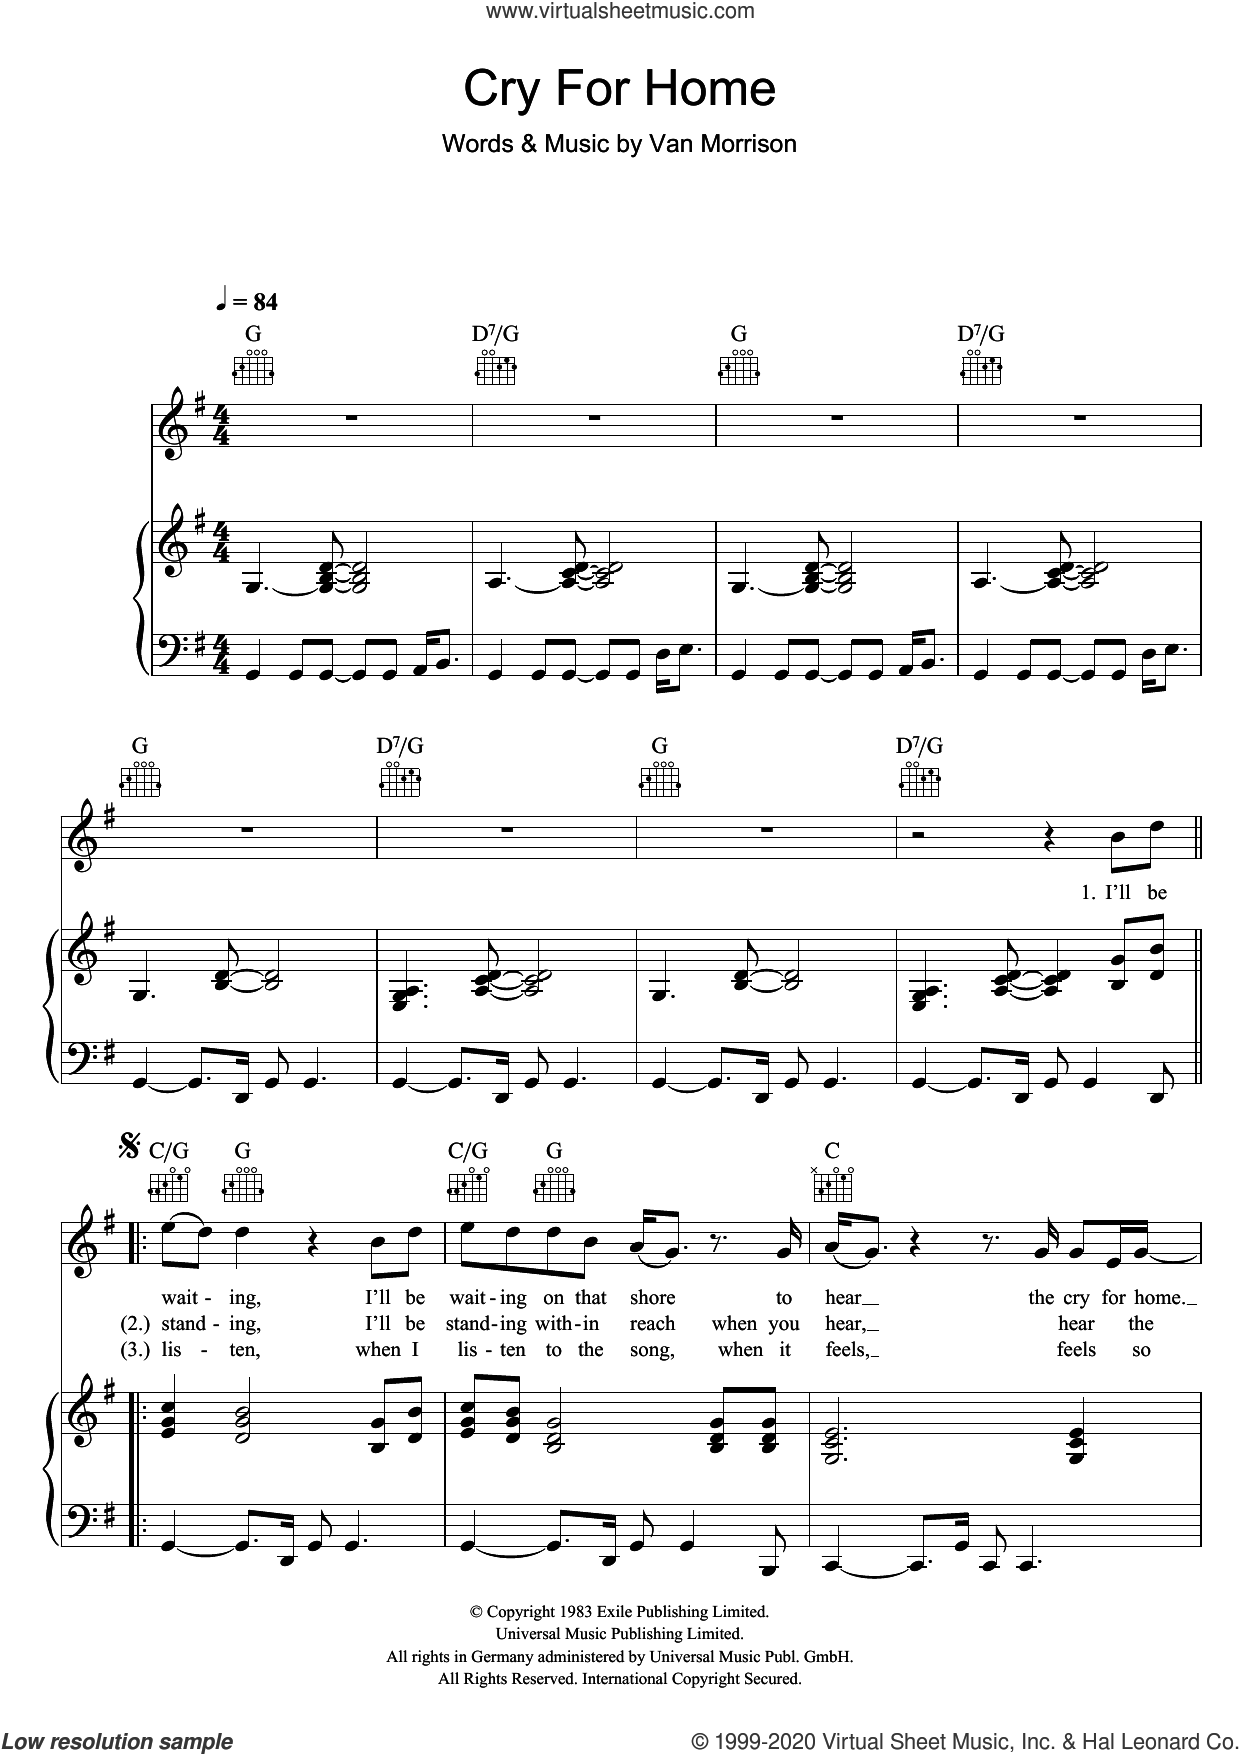 Cry For Home sheet music for voice, piano or guitar by Van Morrison, intermediate skill level